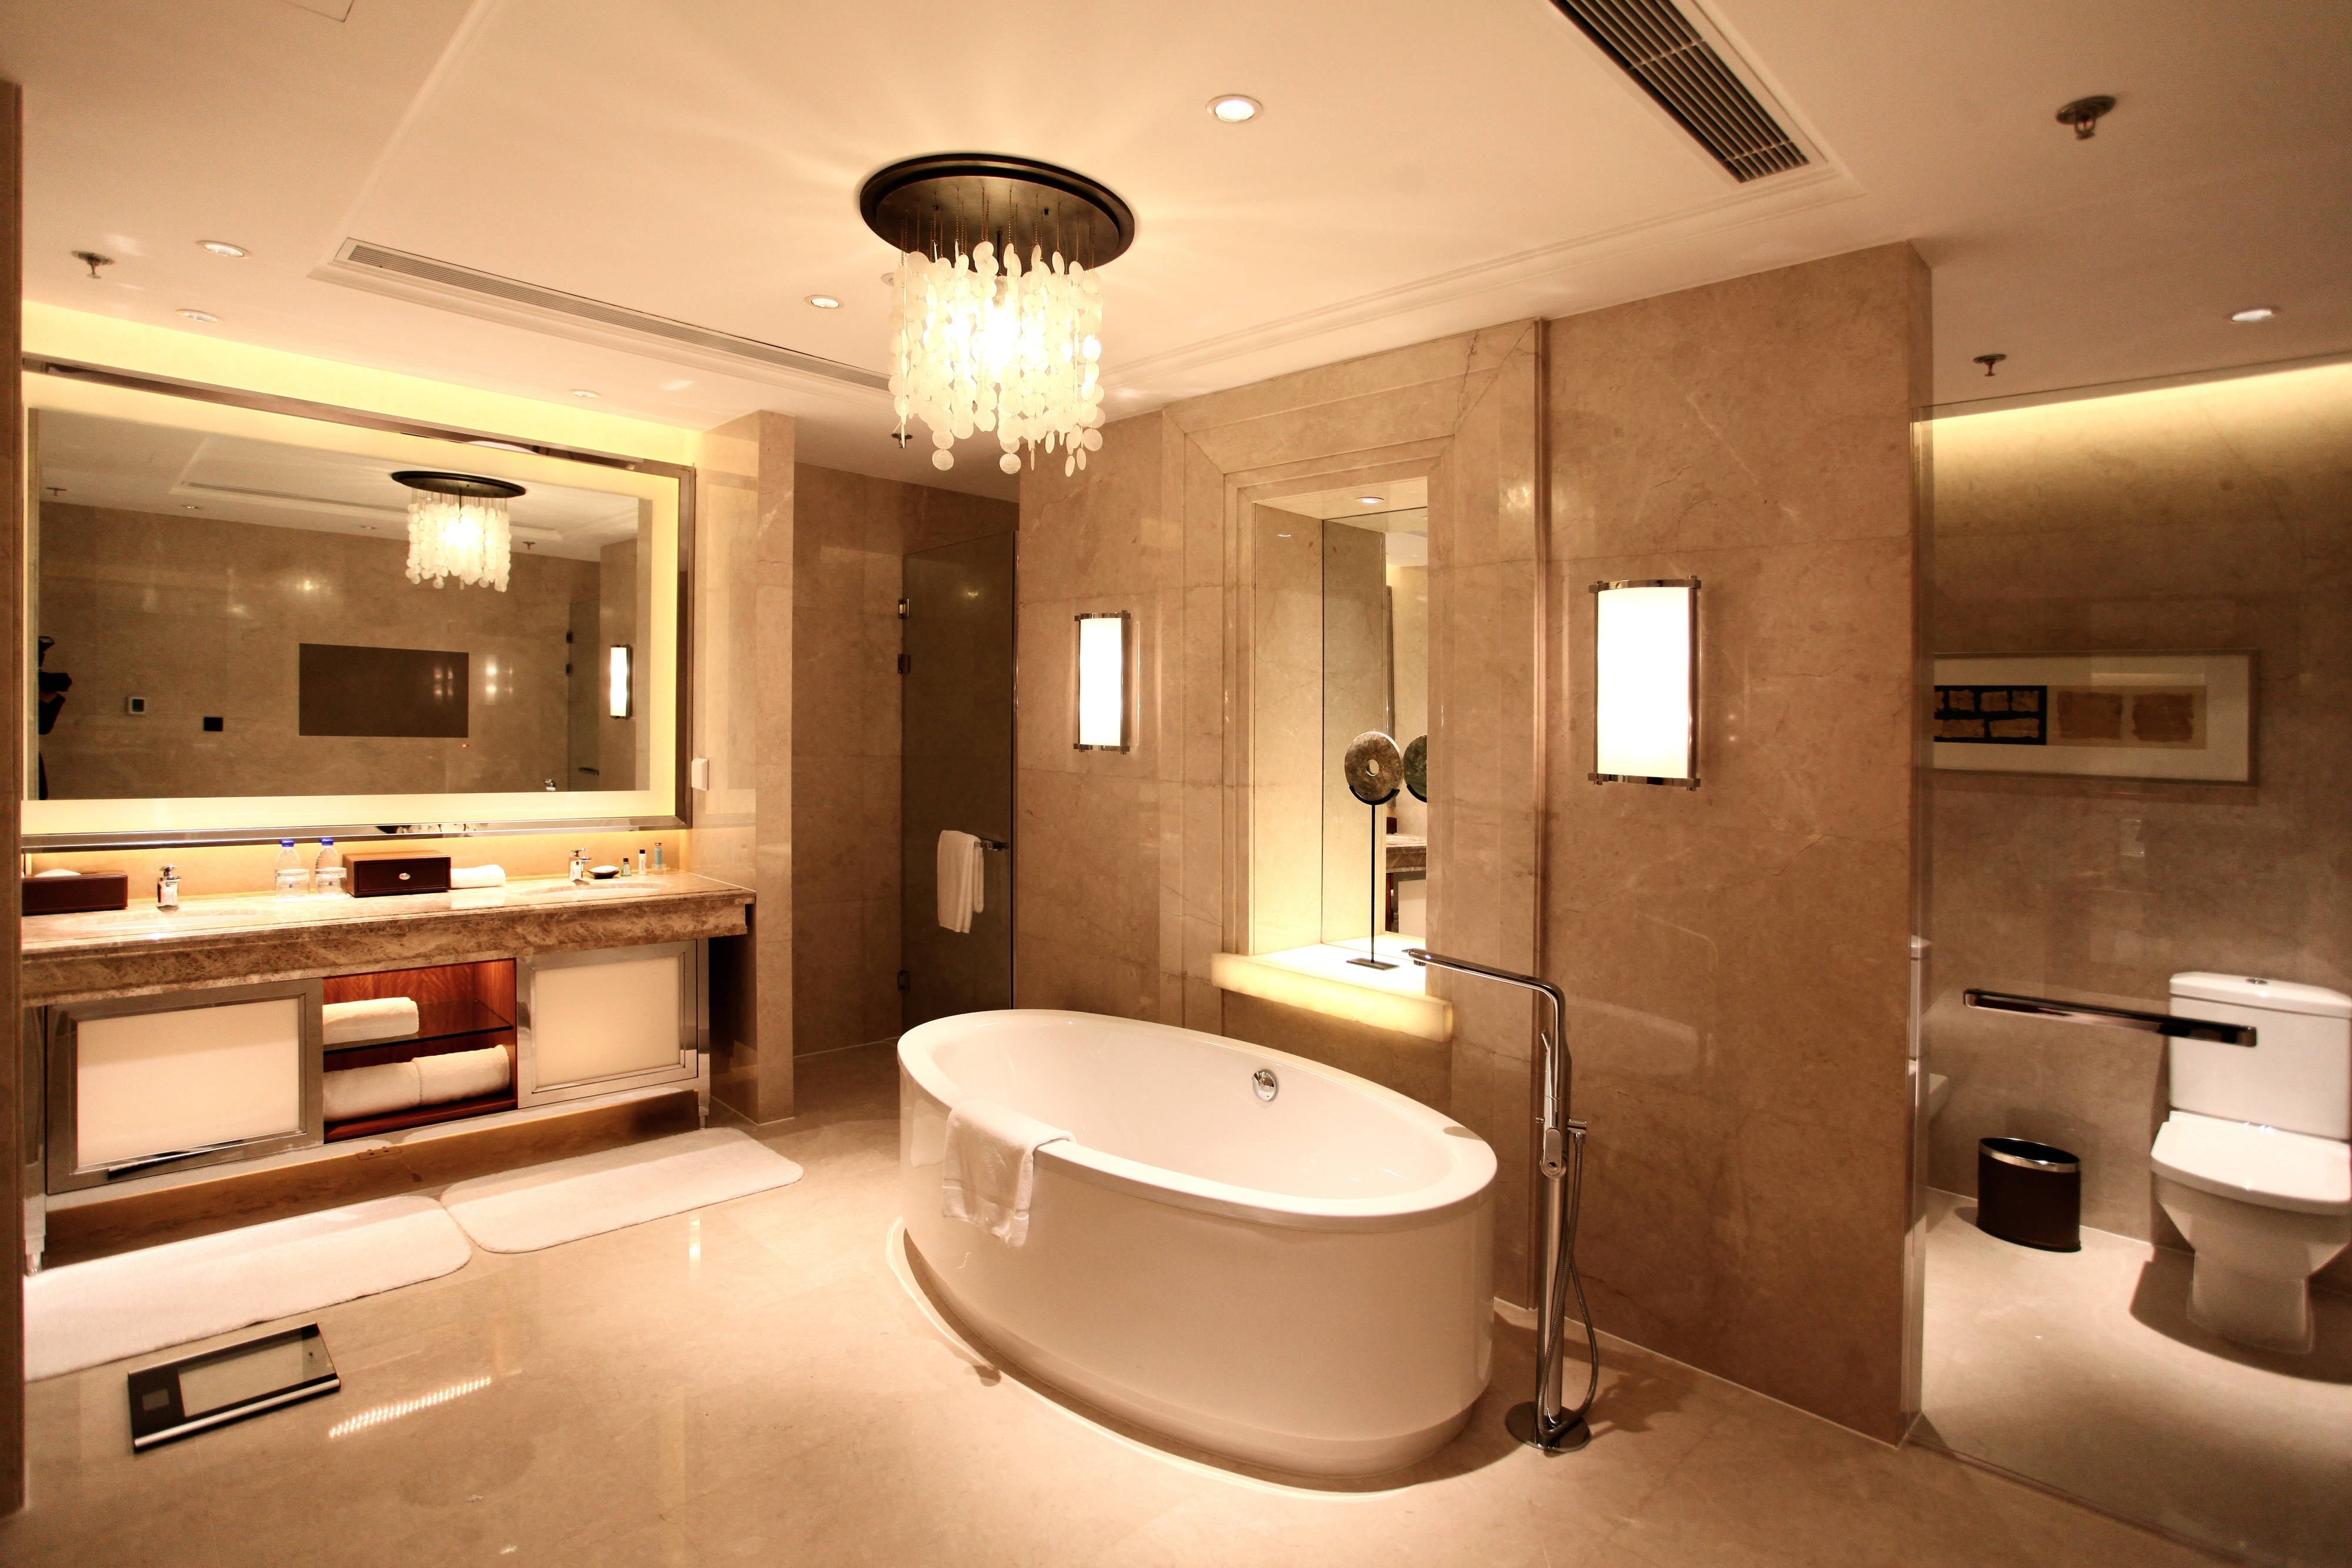 Shanghai luxury suite bathroom